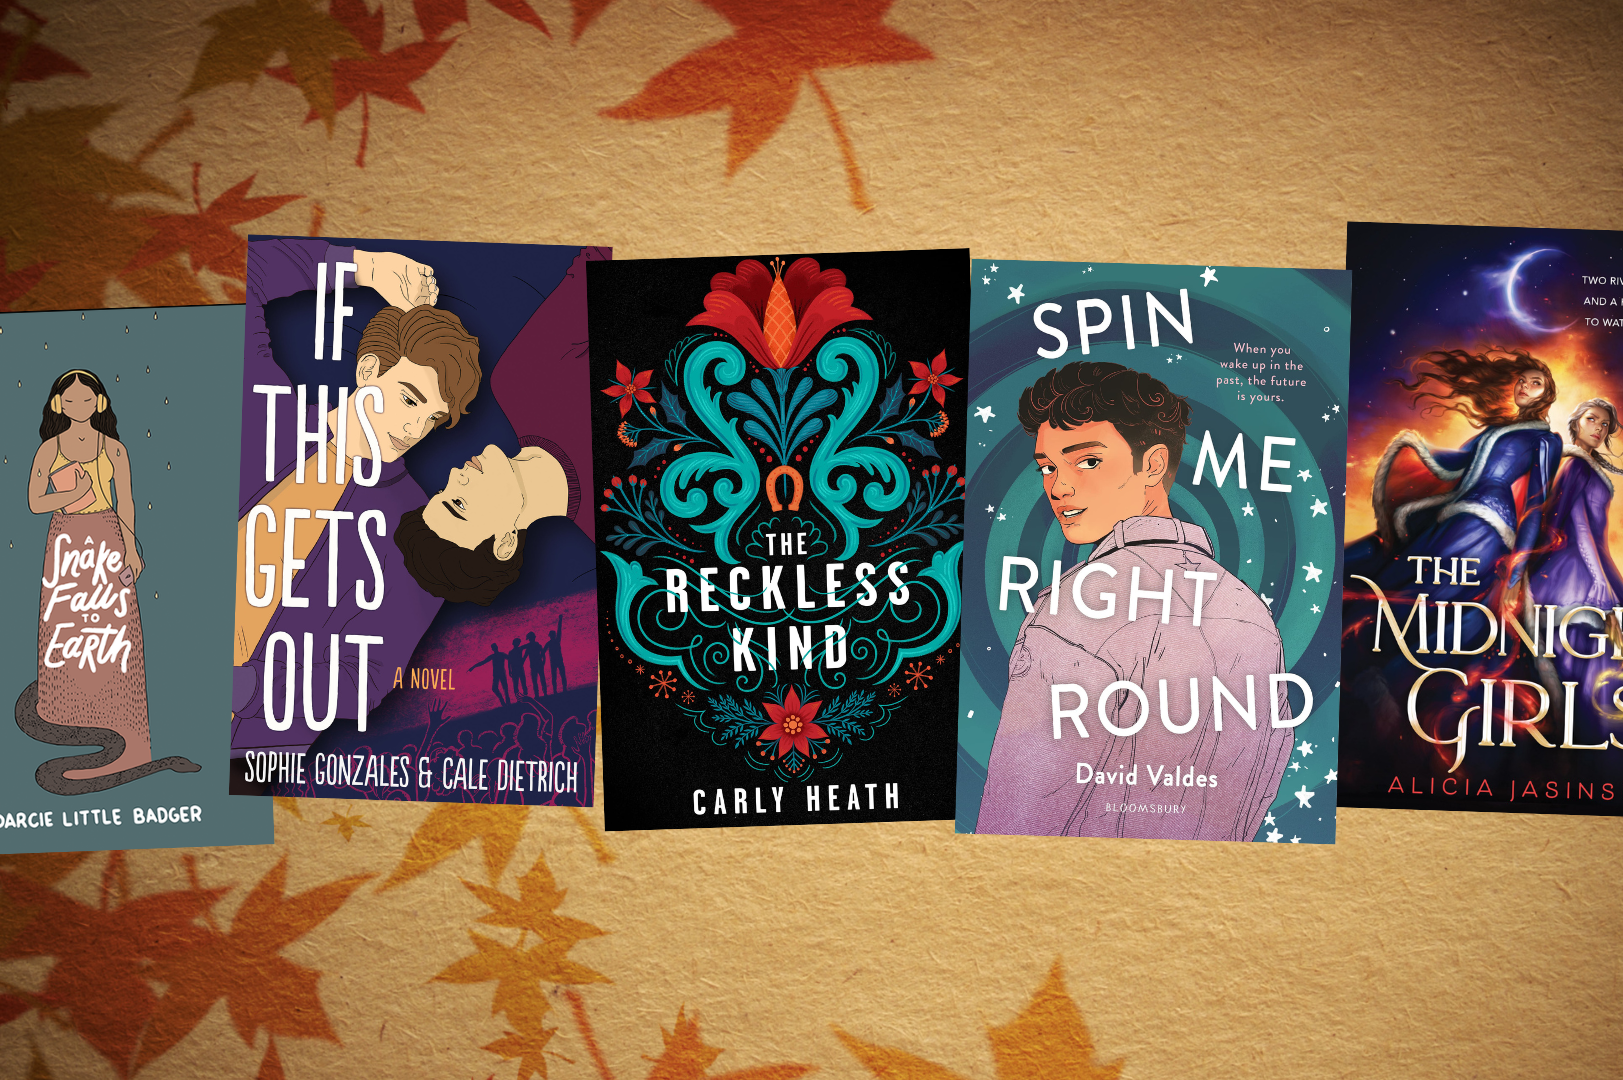 five book covers against a plain background with superimposed fall leaves